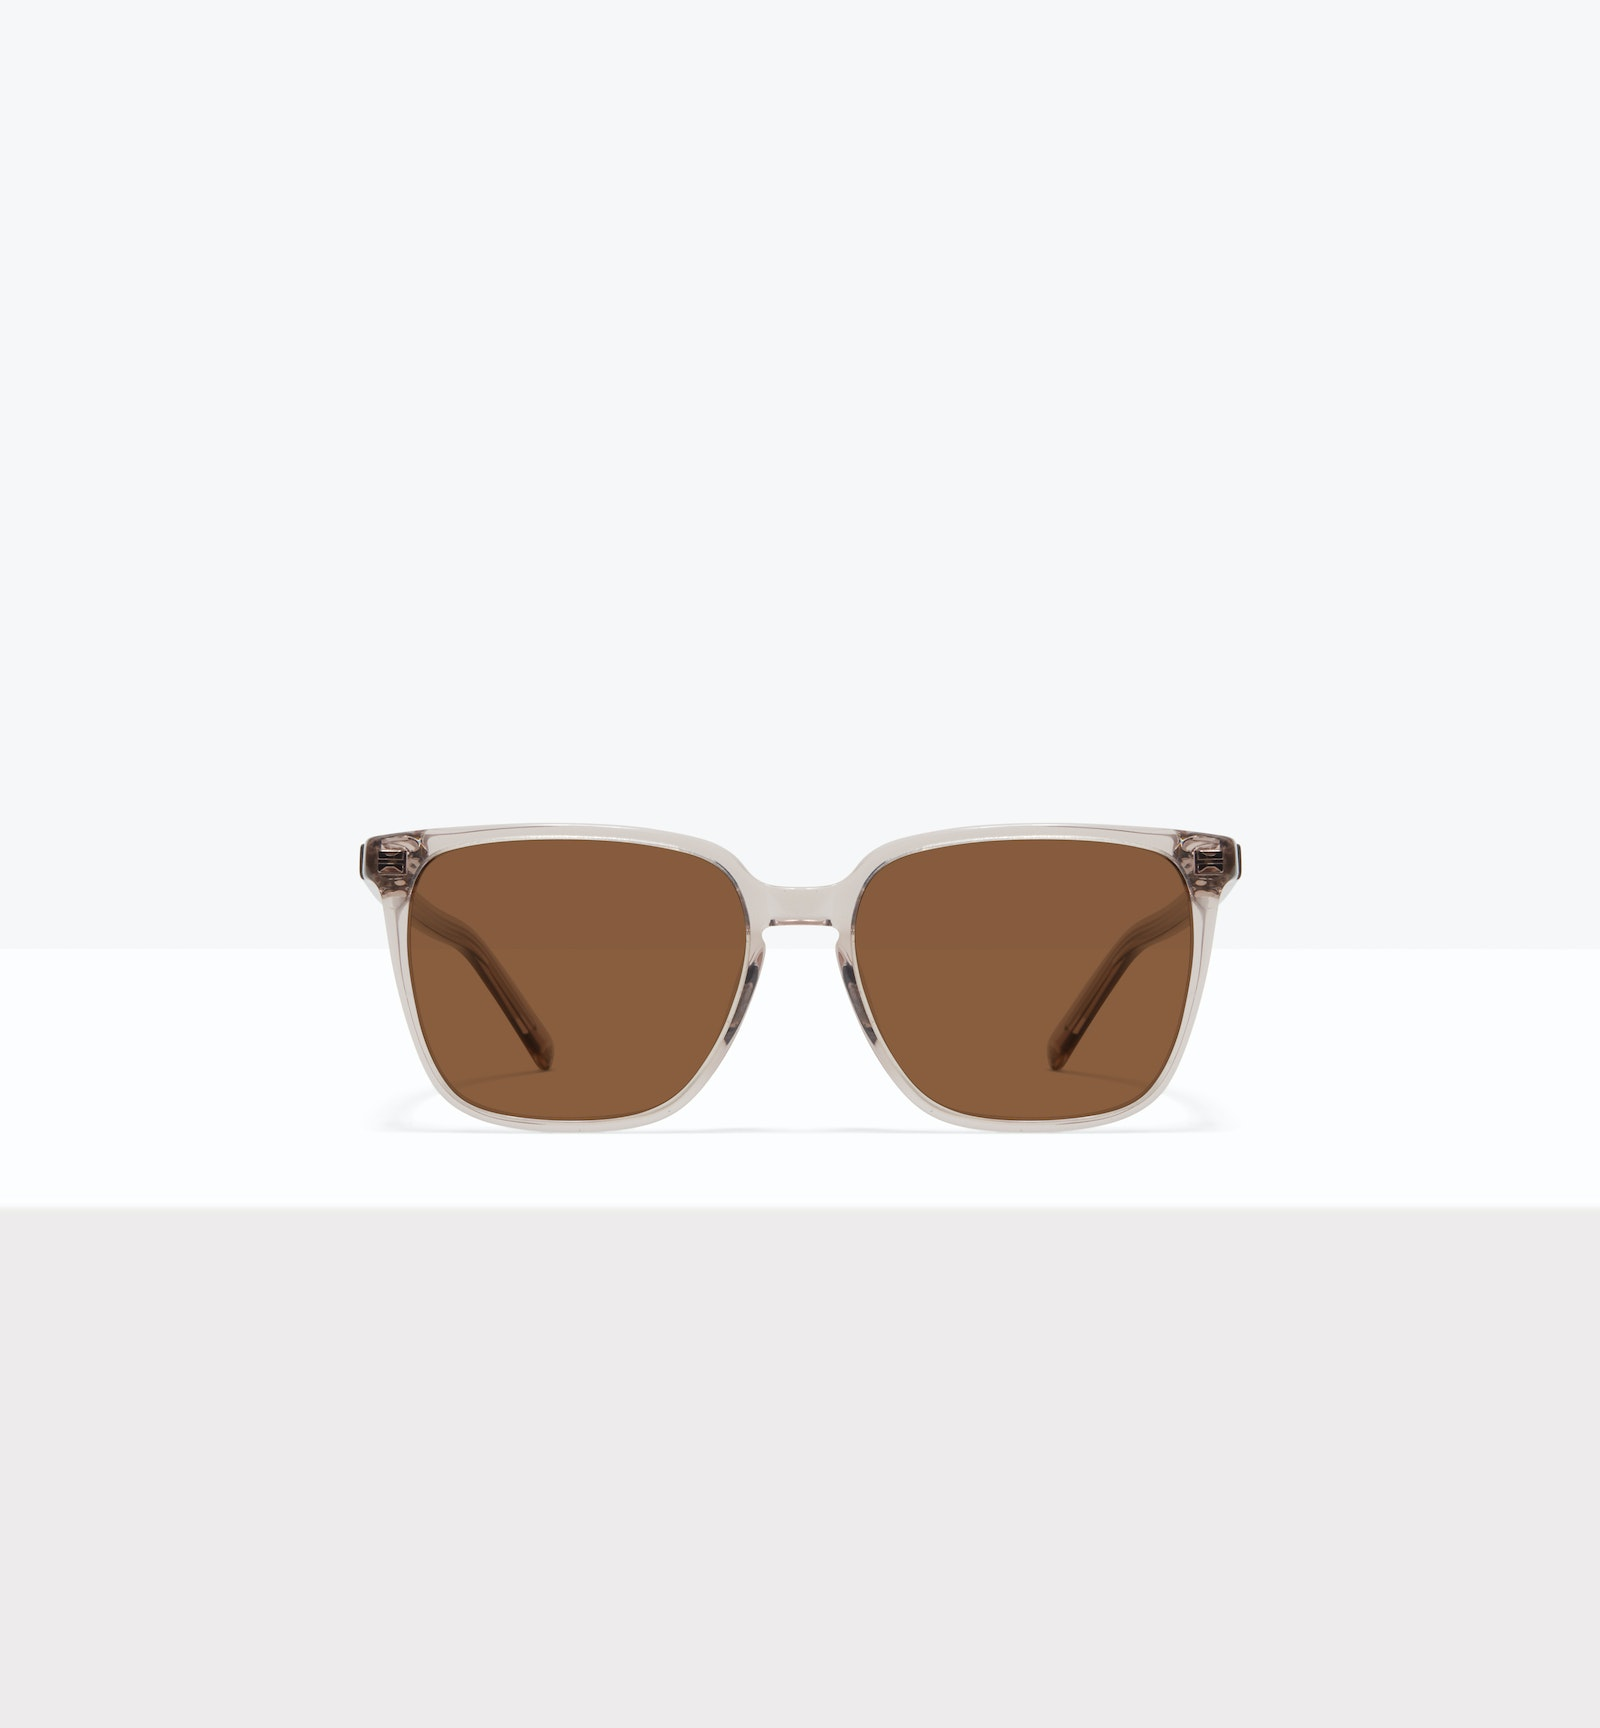 Affordable Fashion Glasses Square Sunglasses Women Runway S Sand